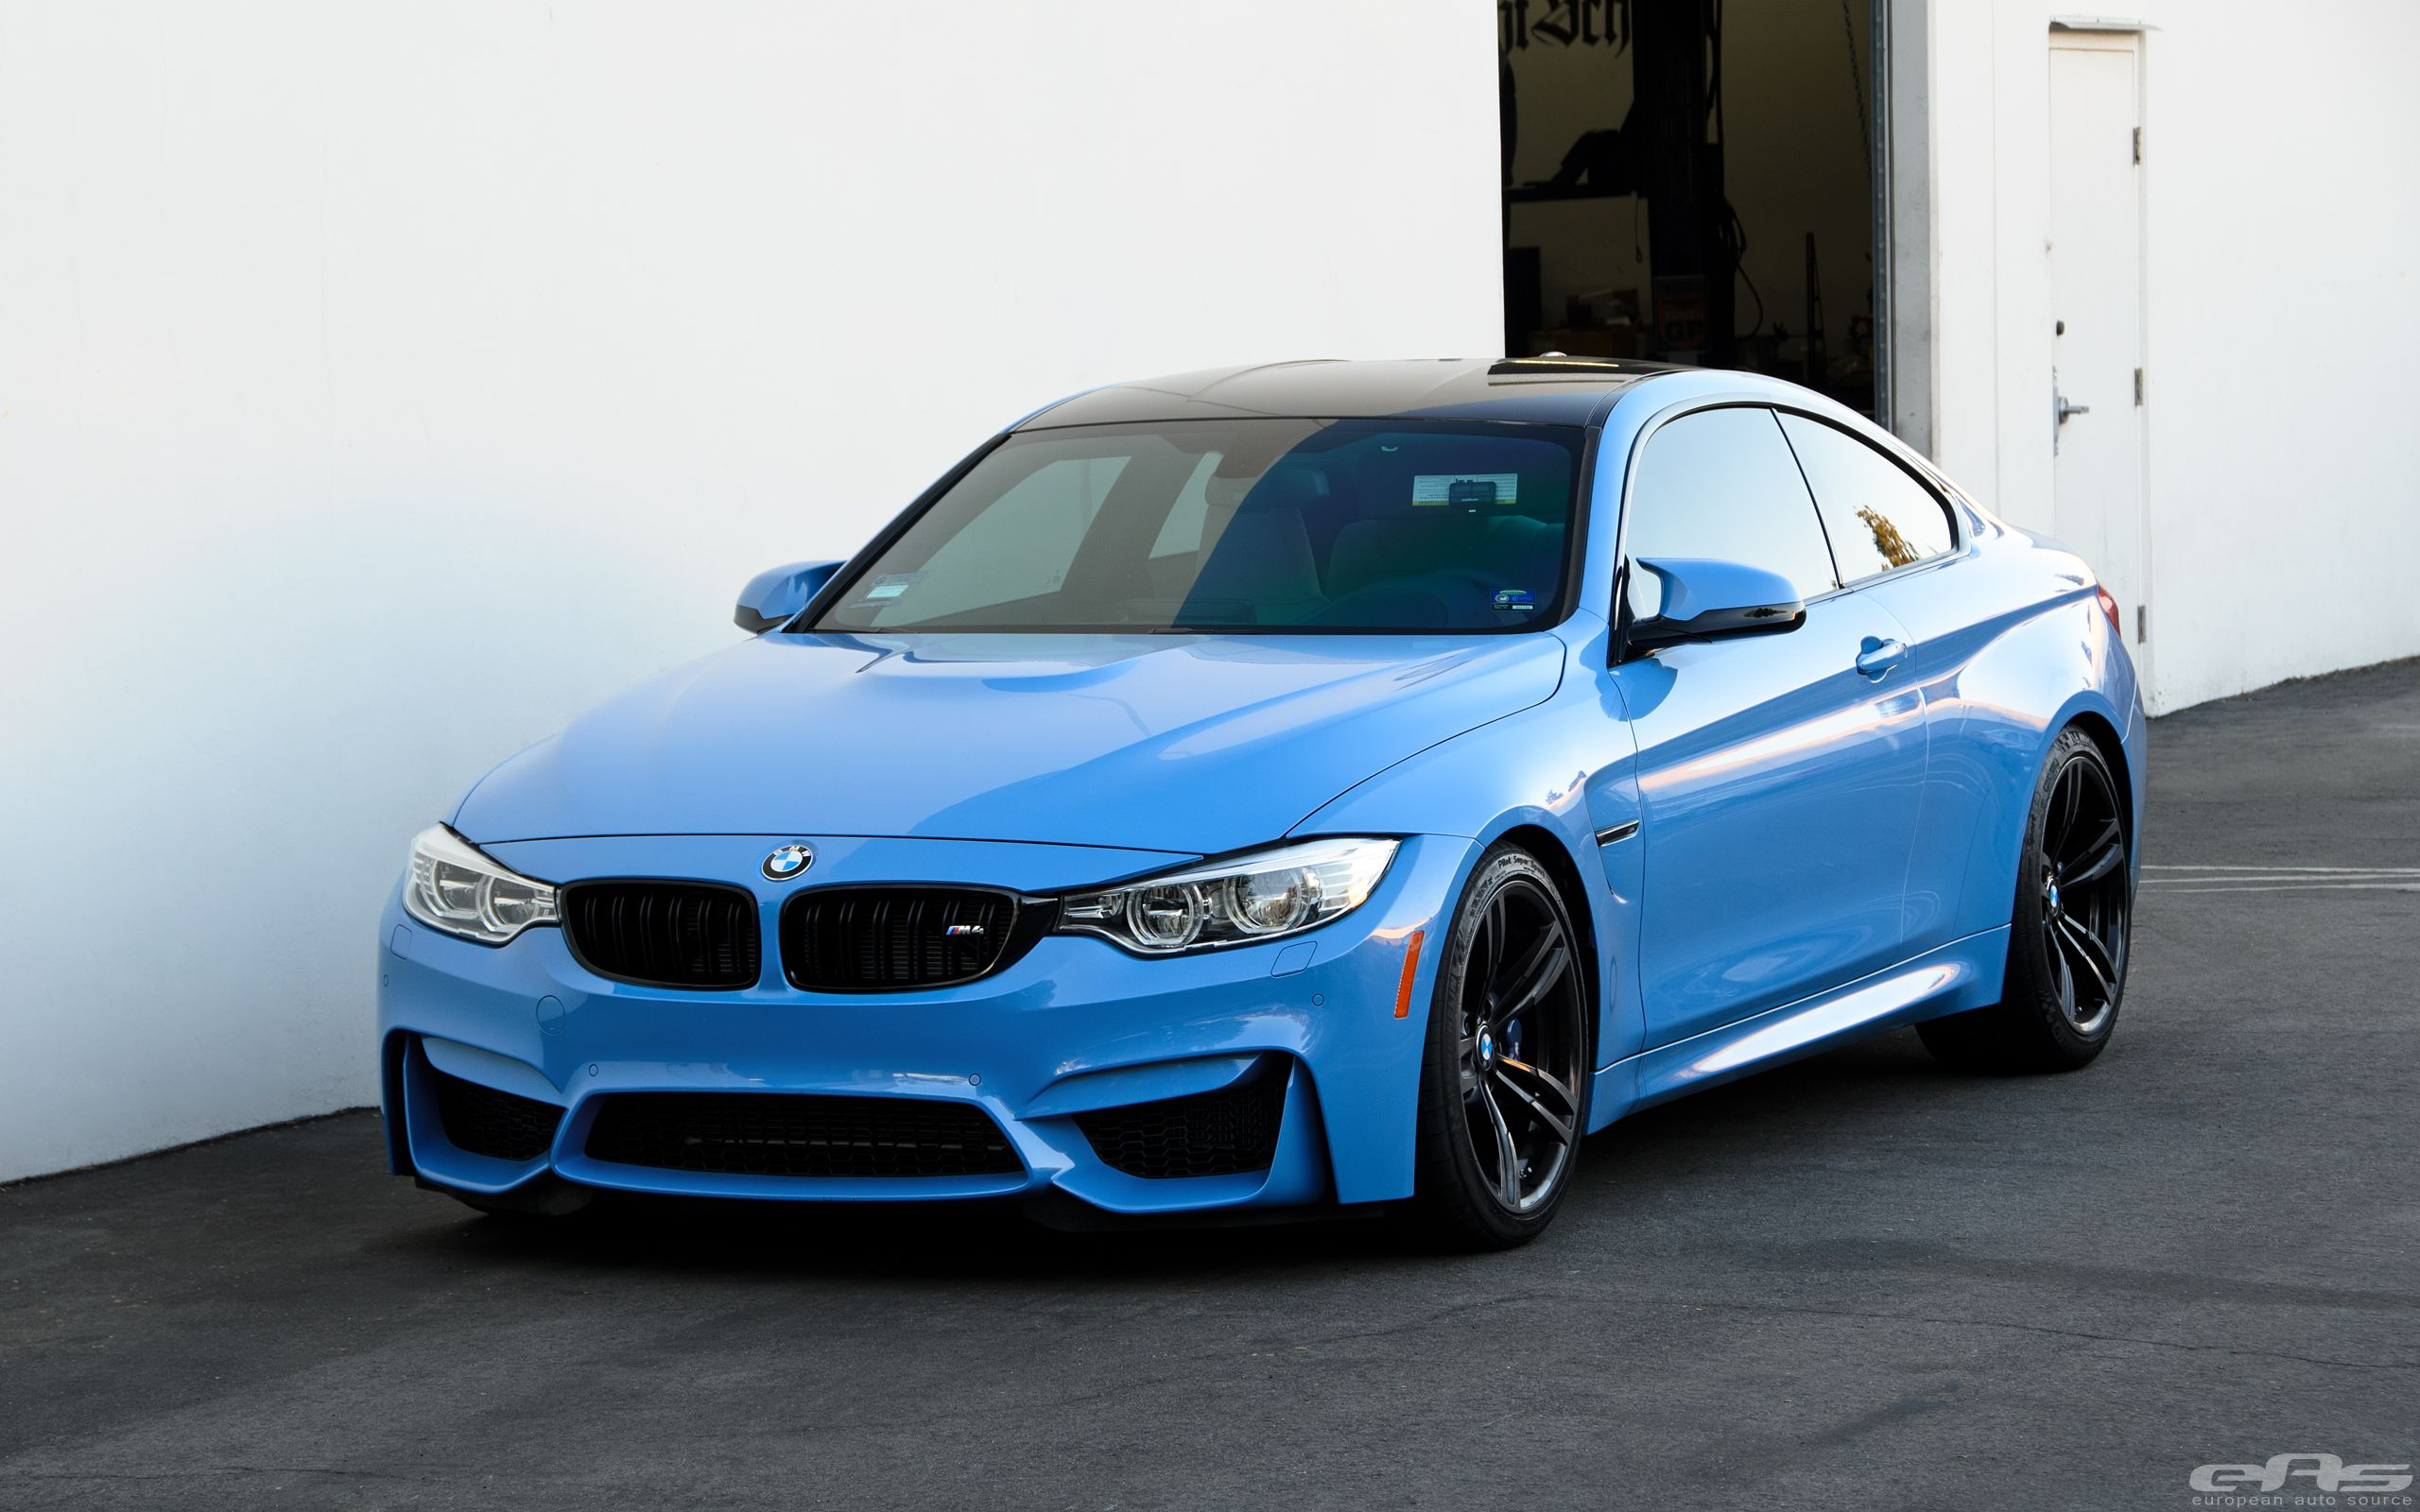 BMW M4 F82 with Akrapovic Exhaust and KW HAS (Height Adjustable Sleeve-Over) lowering spring kits